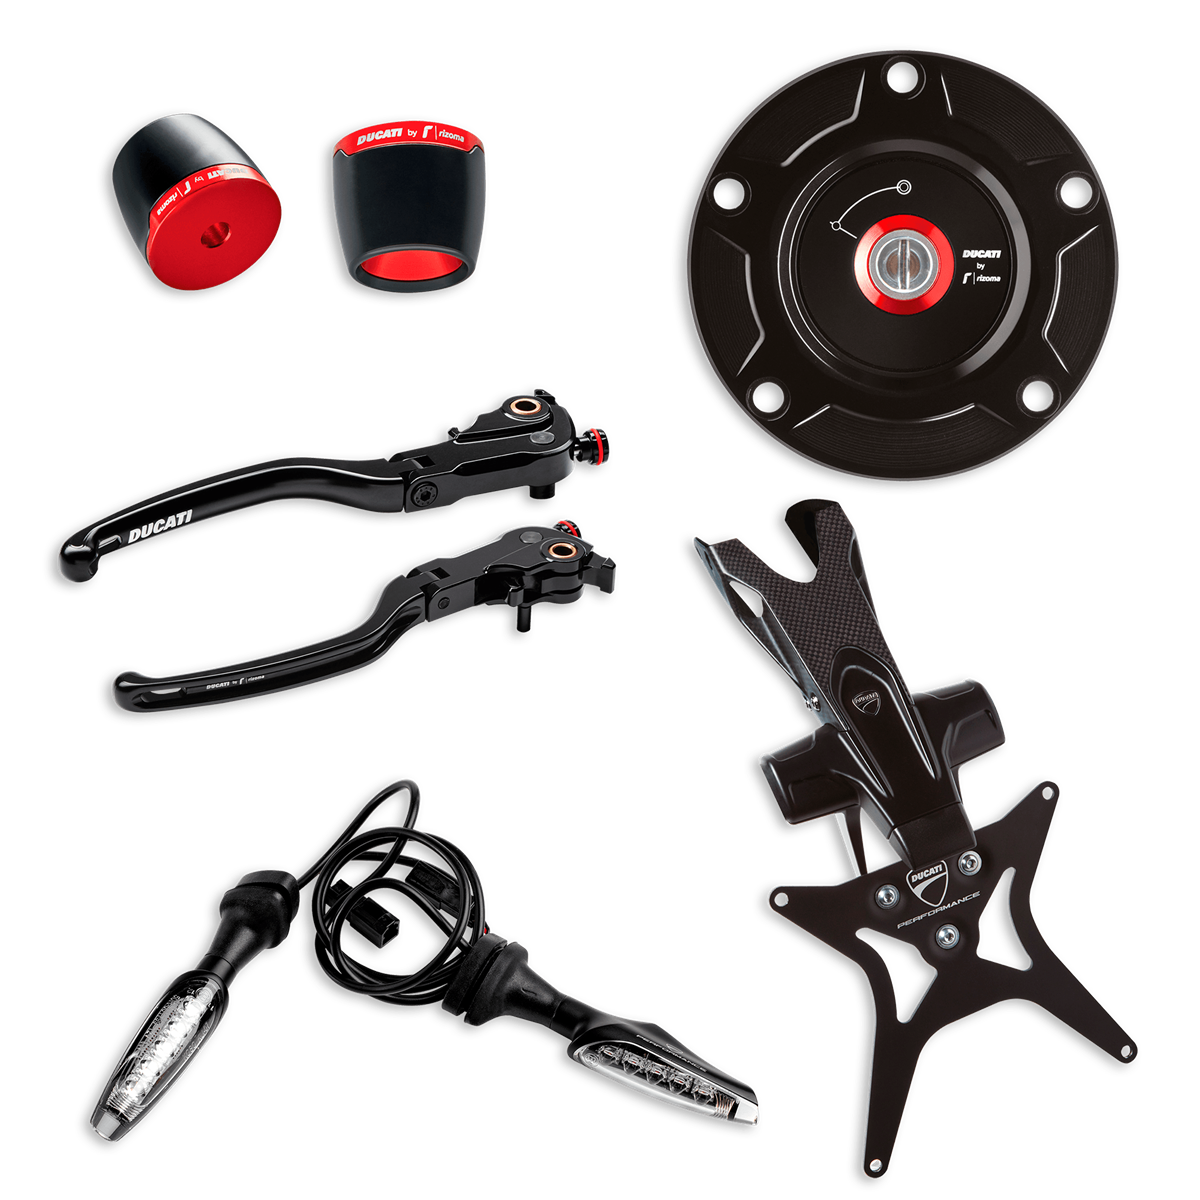 Sport Panigale accessory package.